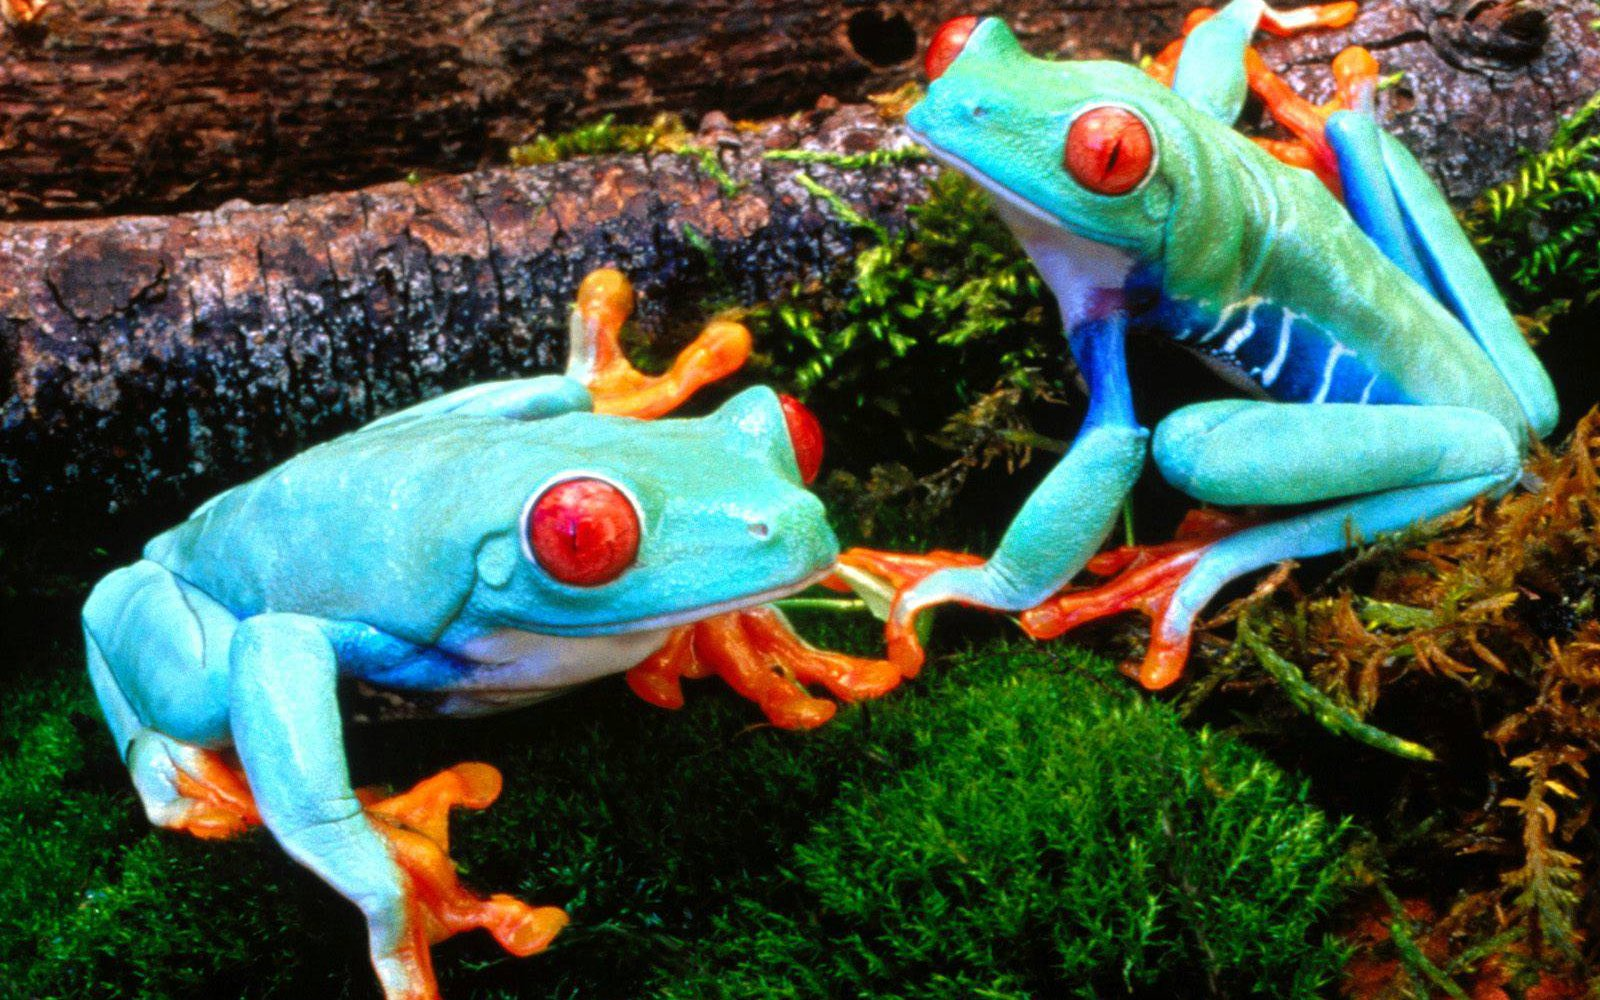 Frog Photos Most Beautiful Colorful Frogs Pictures